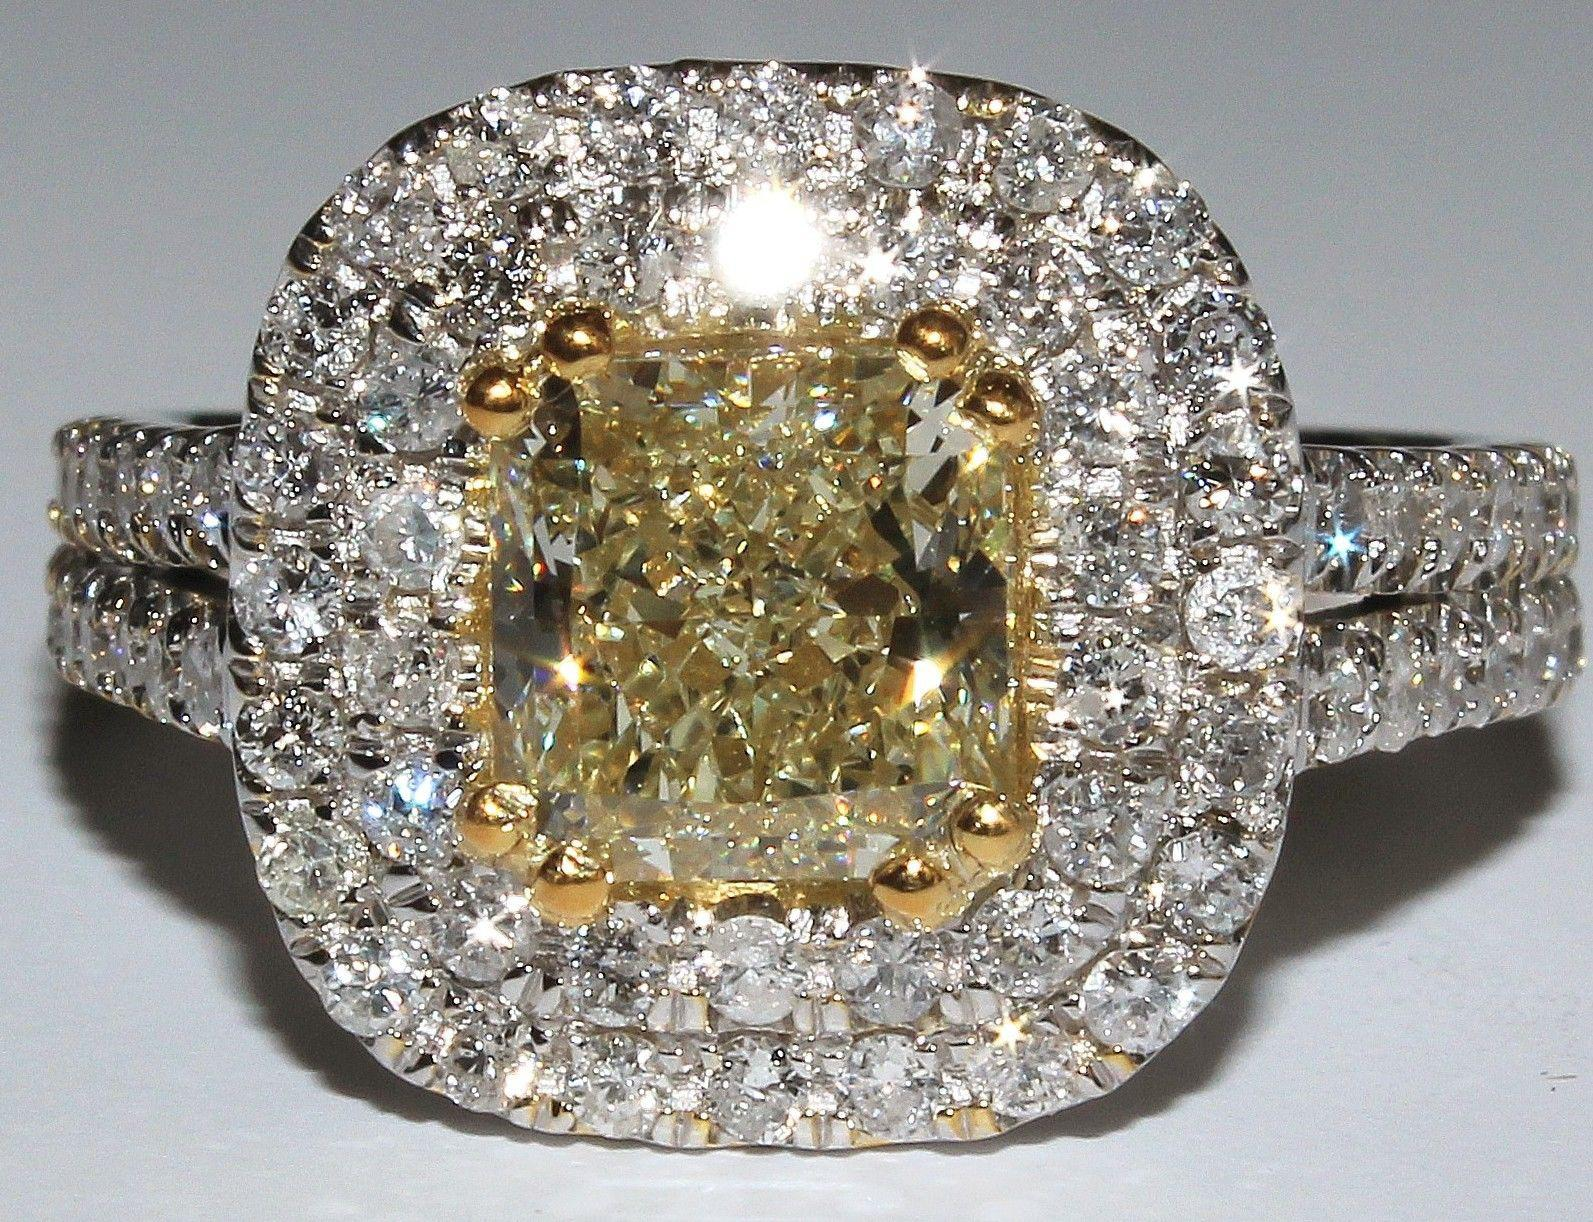 watch halo diamond radiant style ring pave g cut vintage engagement rings er sold carat